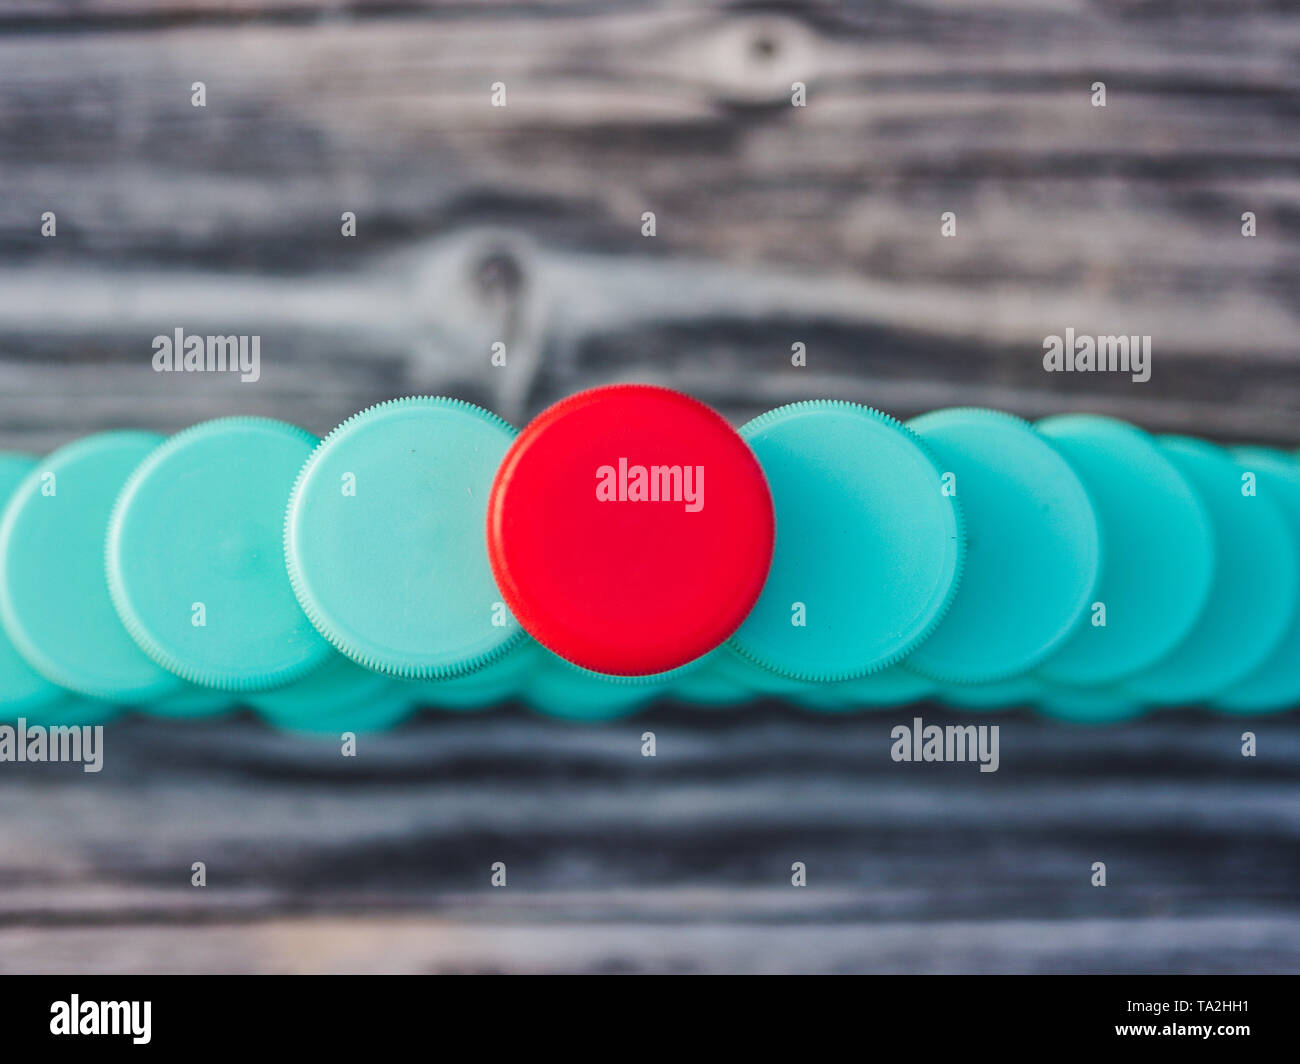 Image of different colored plastic caps on wooden background Stock Photo